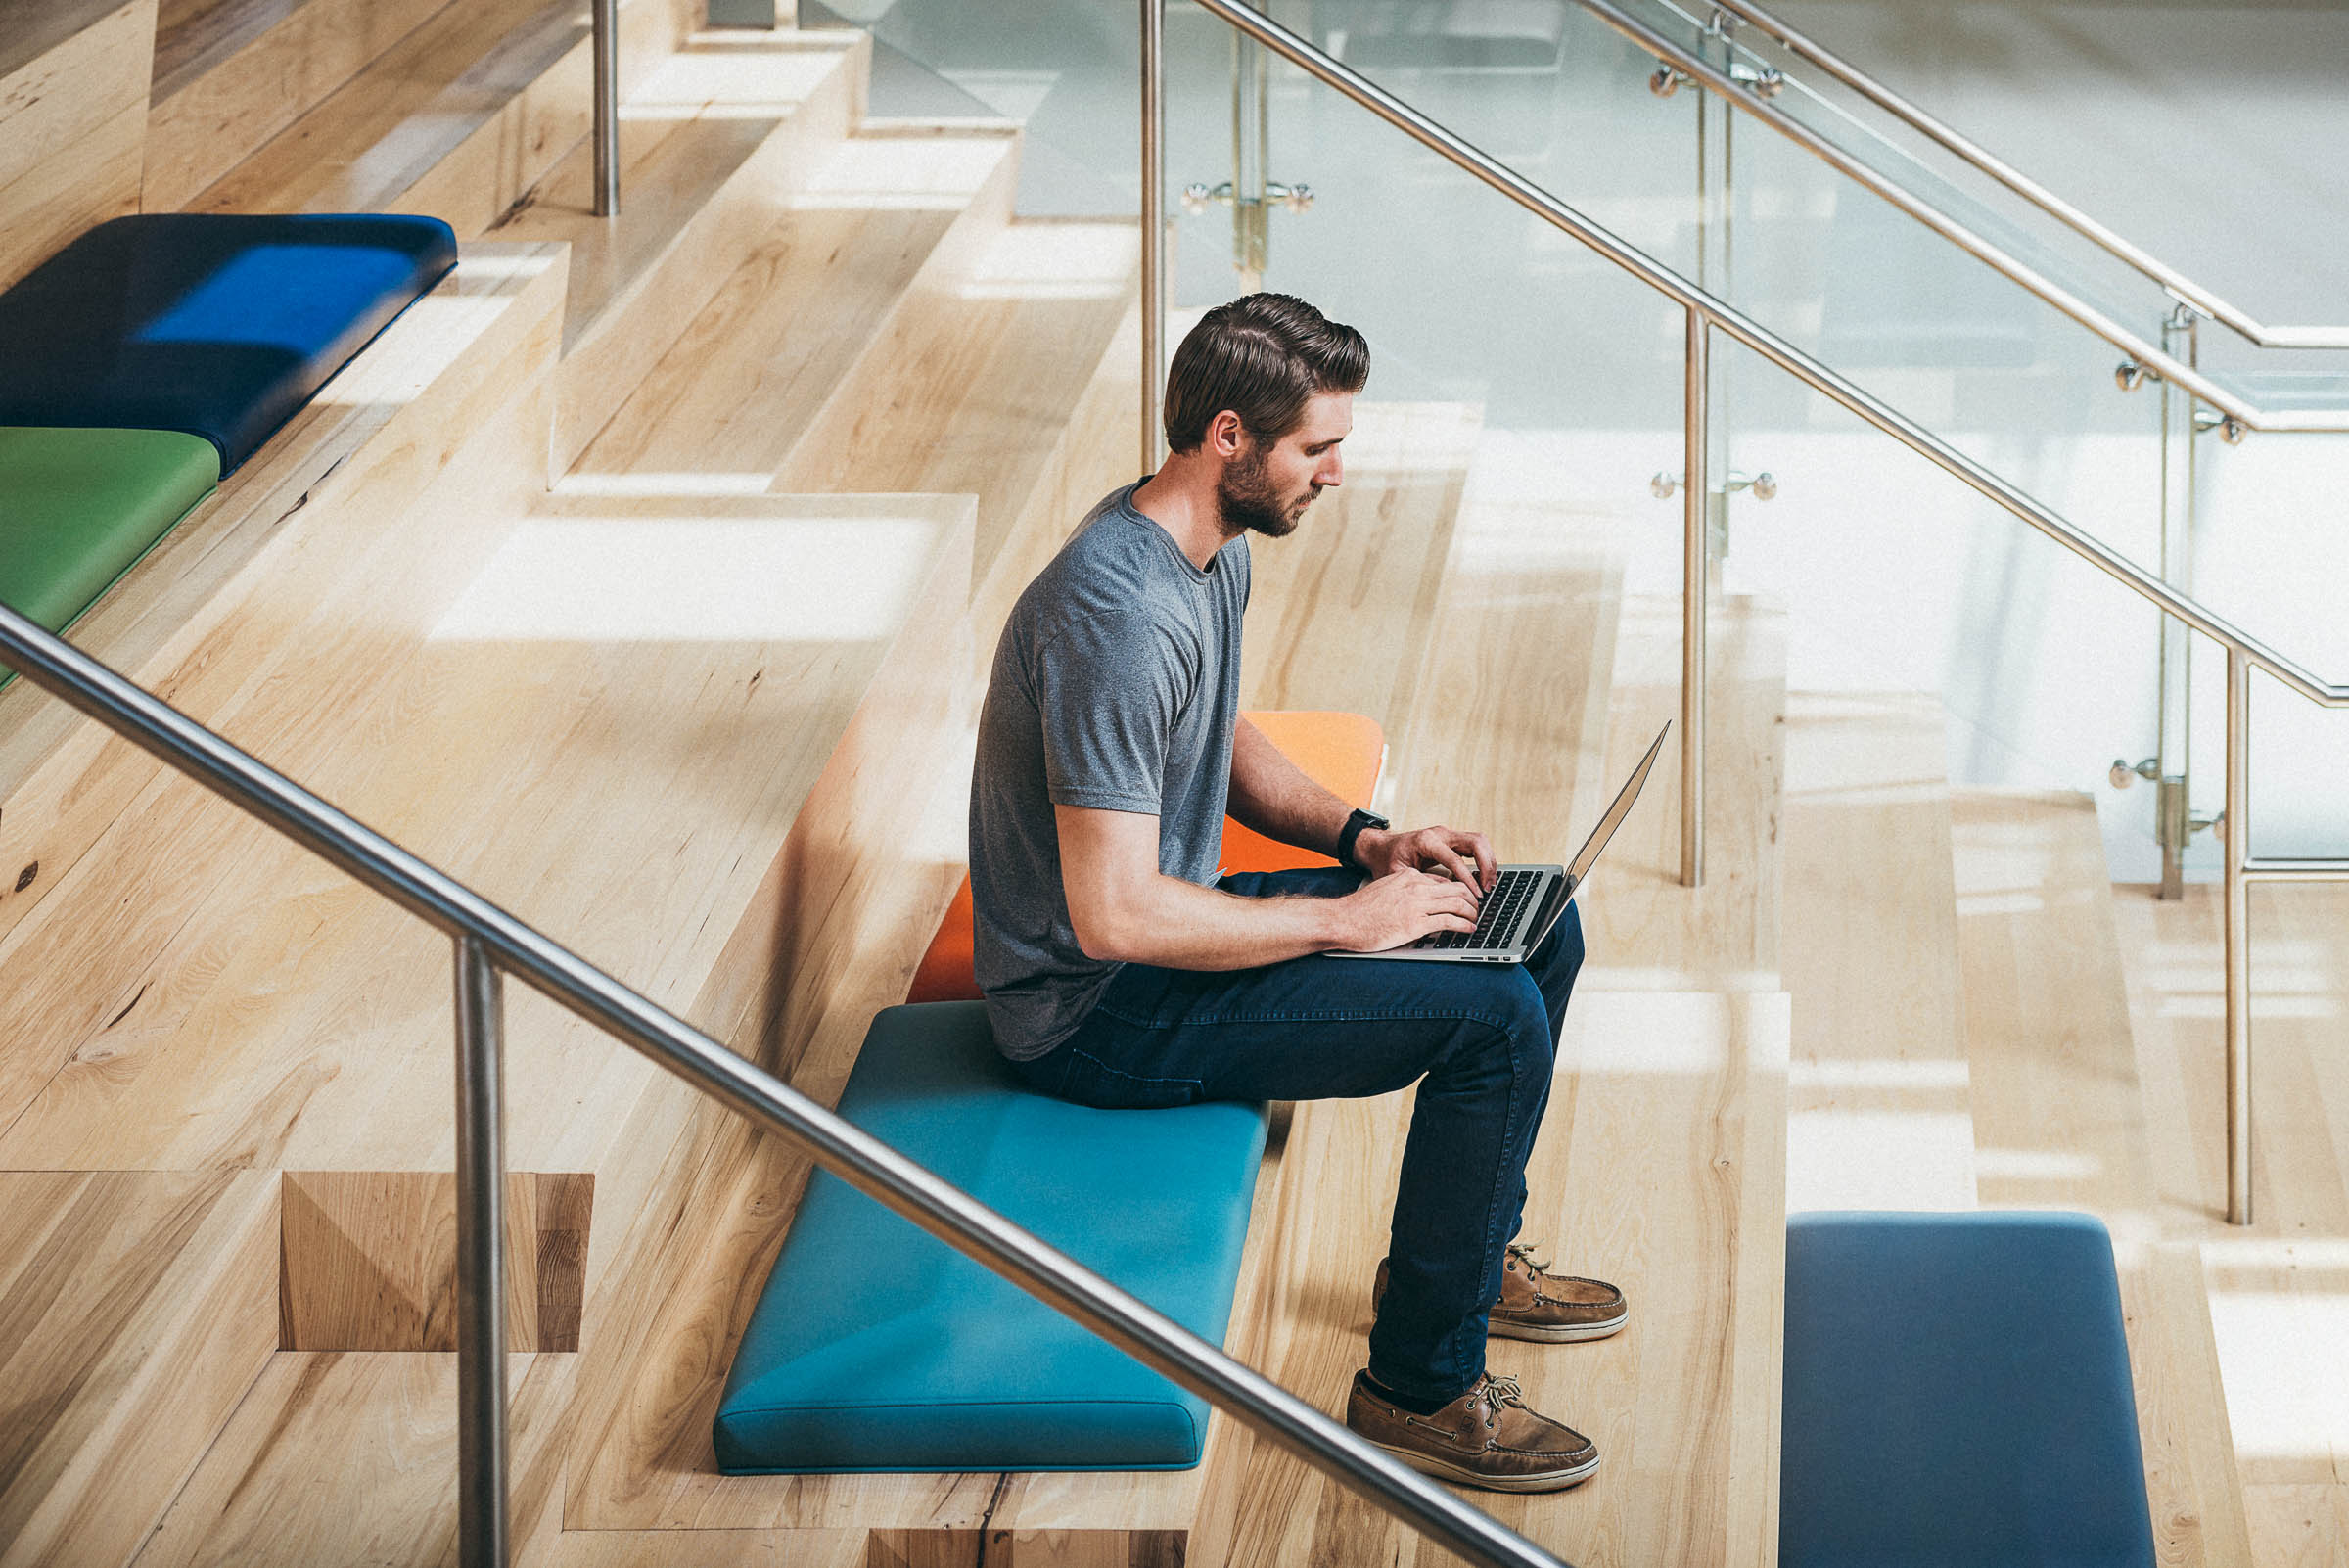 Tech lifestyle photography  - a stylish man works on his laptop, sitting on beautiful wood stairs.